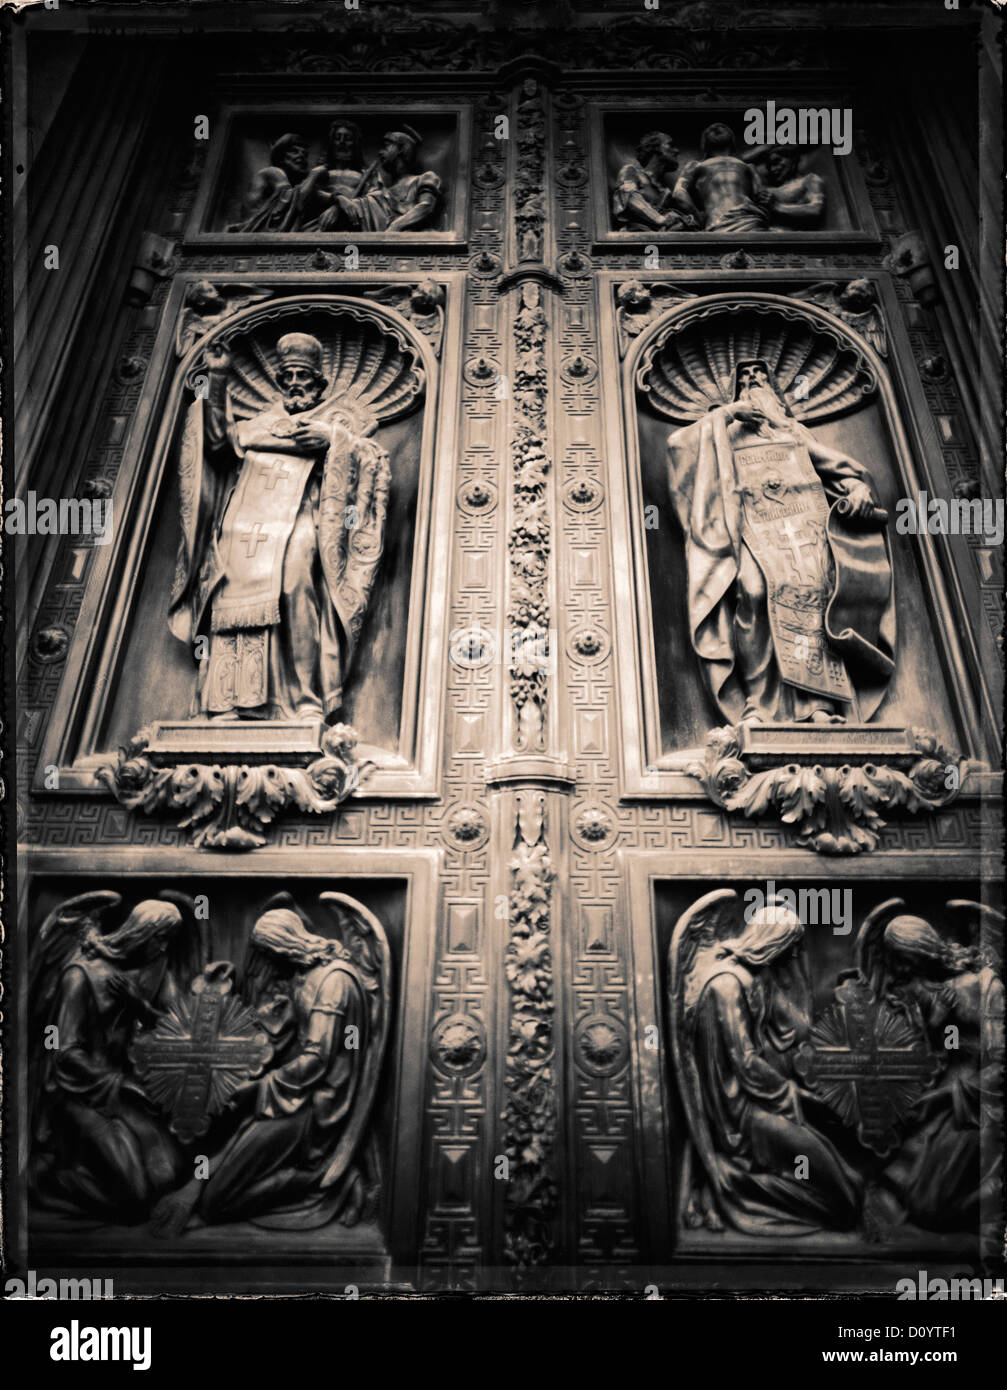 Russian Orthodox reliefs on the bronze doors of St. Isaac\u0027s Cathedral in St. Petersburg Russia. & Russian Orthodox reliefs on the bronze doors of St. Isaac\u0027s ... Pezcame.Com